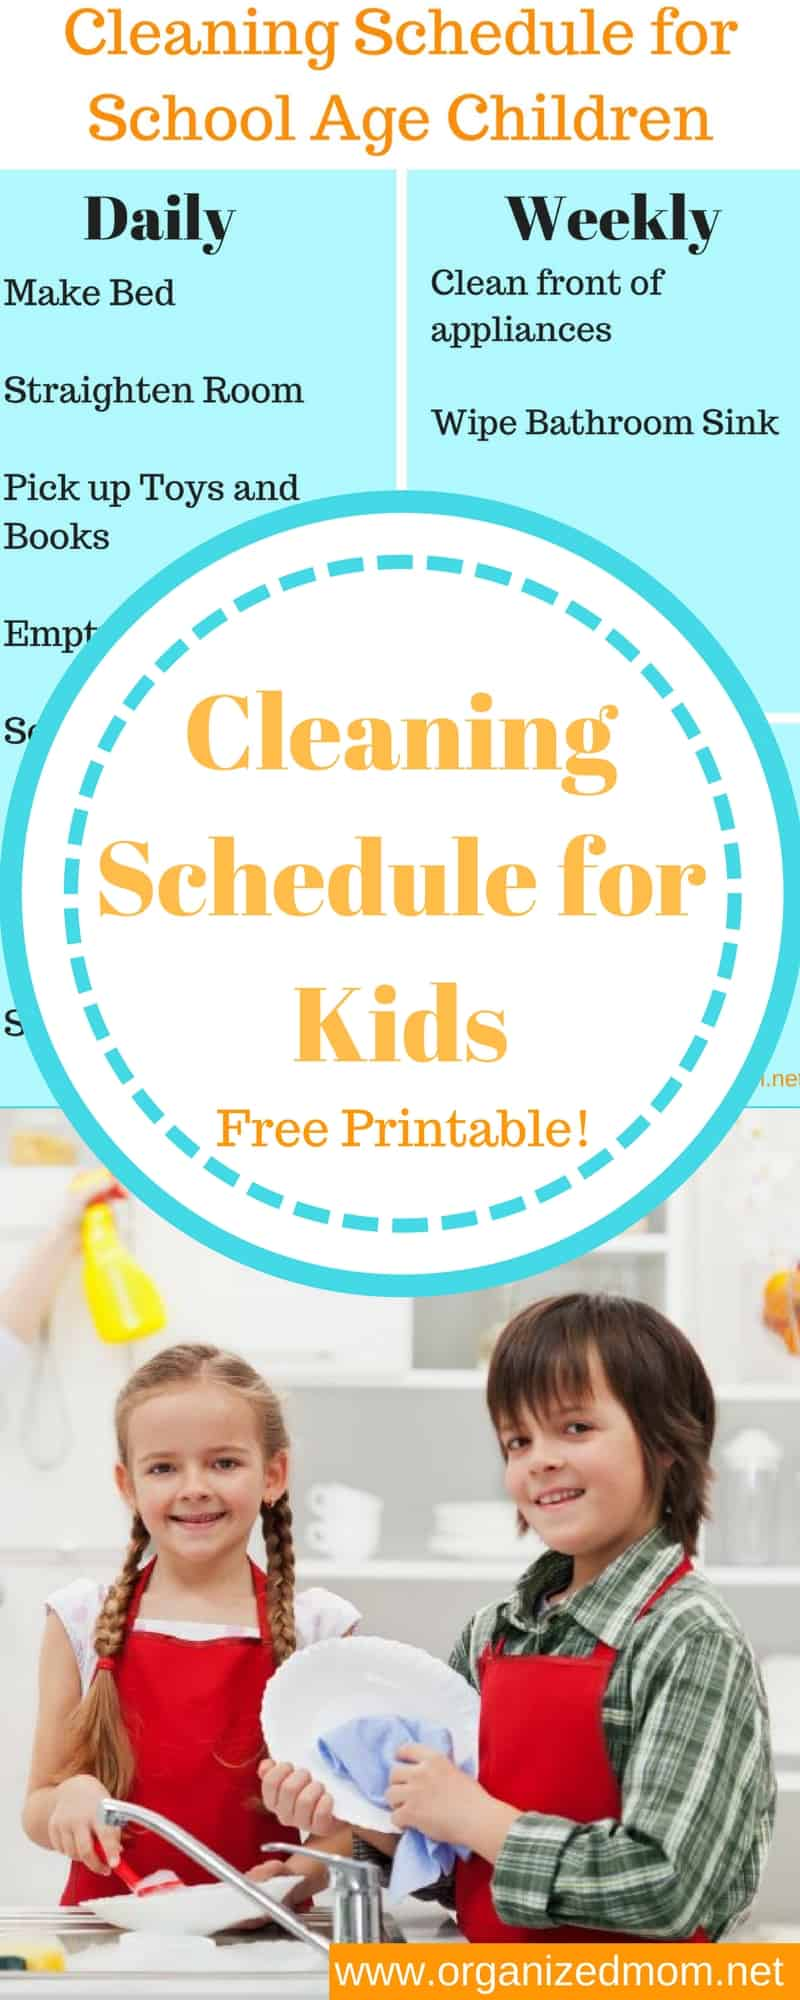 Cleaning--Cleaning Schedule for Kids**Free Printable--The Organized Mom